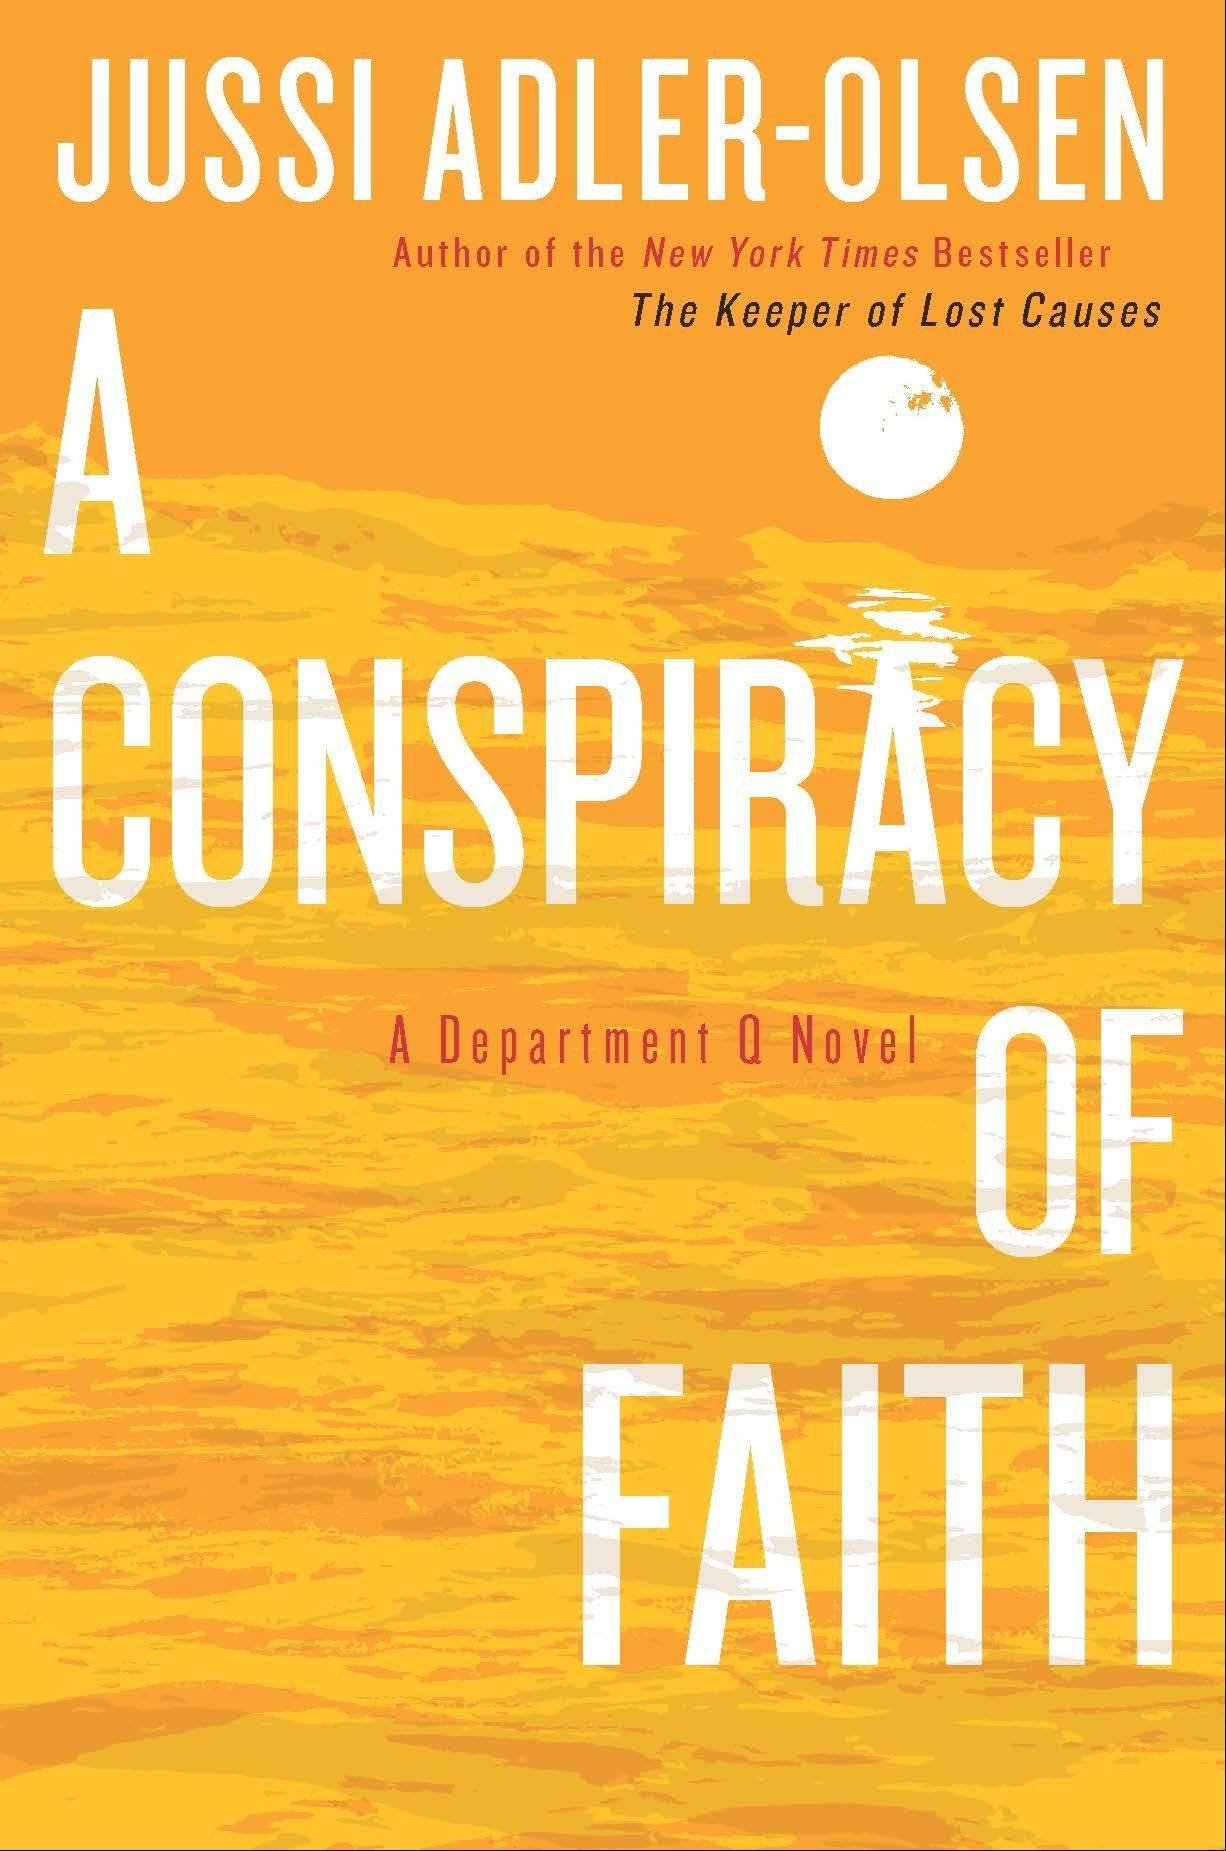 """A Conspiracy of Faith"" by Jussi Adler-Olsen"